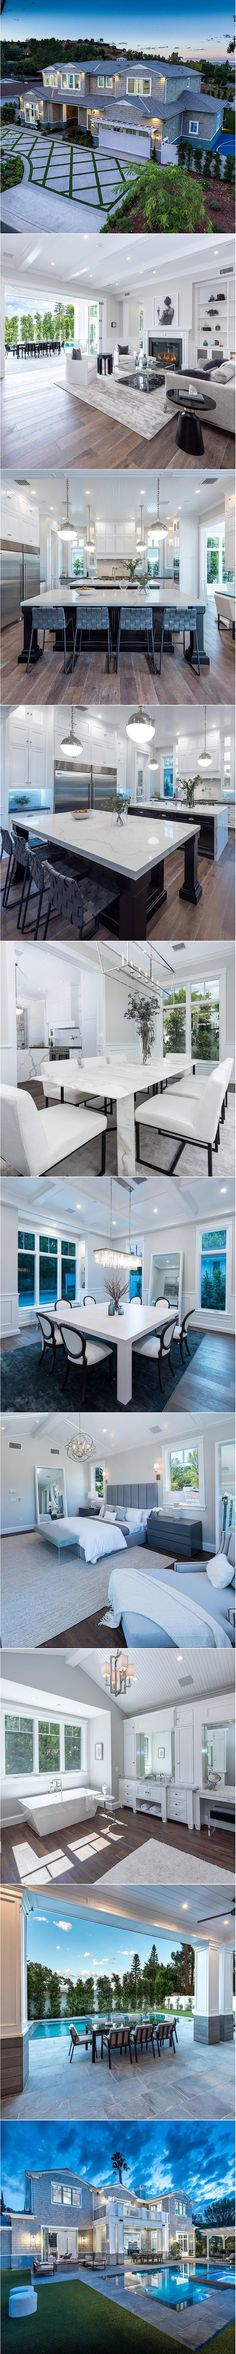 Designed by premier home builders, AMG Capital, this new smart home blends the best of traditional styling w/21st century tech. Sizeable floorplan is enhanced by custom lighting, wood floors, soaring coffered ceilings, high end fixtures & bi-fold French doors. Common rooms include a living room with fireplace & built-in cabinetry, formal dining room, sizeable den […]